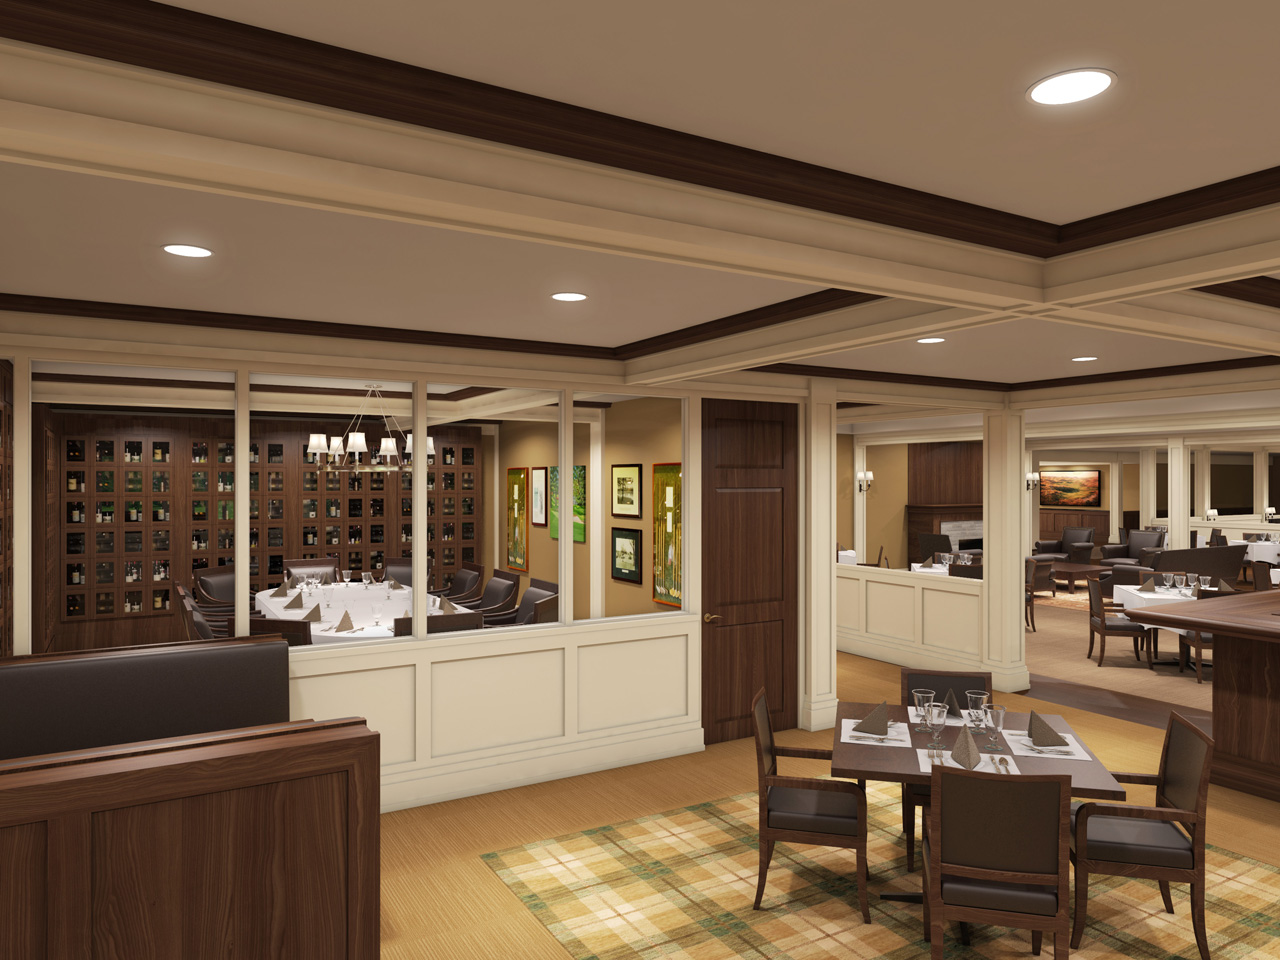 Portland Golf Club: Remodel